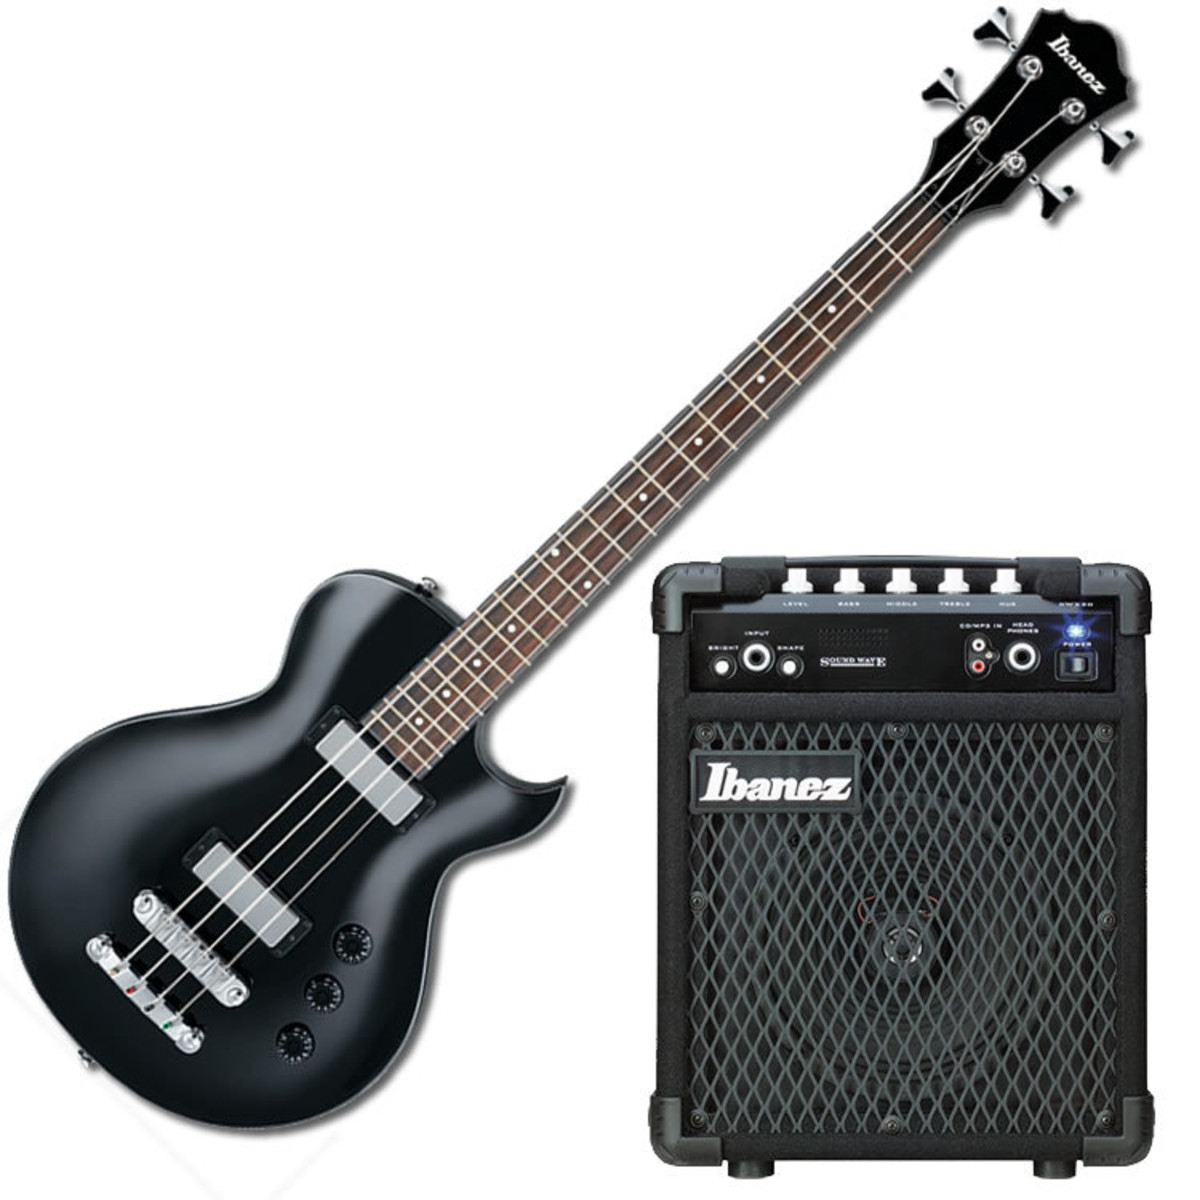 disc ibanez artb100 guitare basse ampli basse swx20. Black Bedroom Furniture Sets. Home Design Ideas